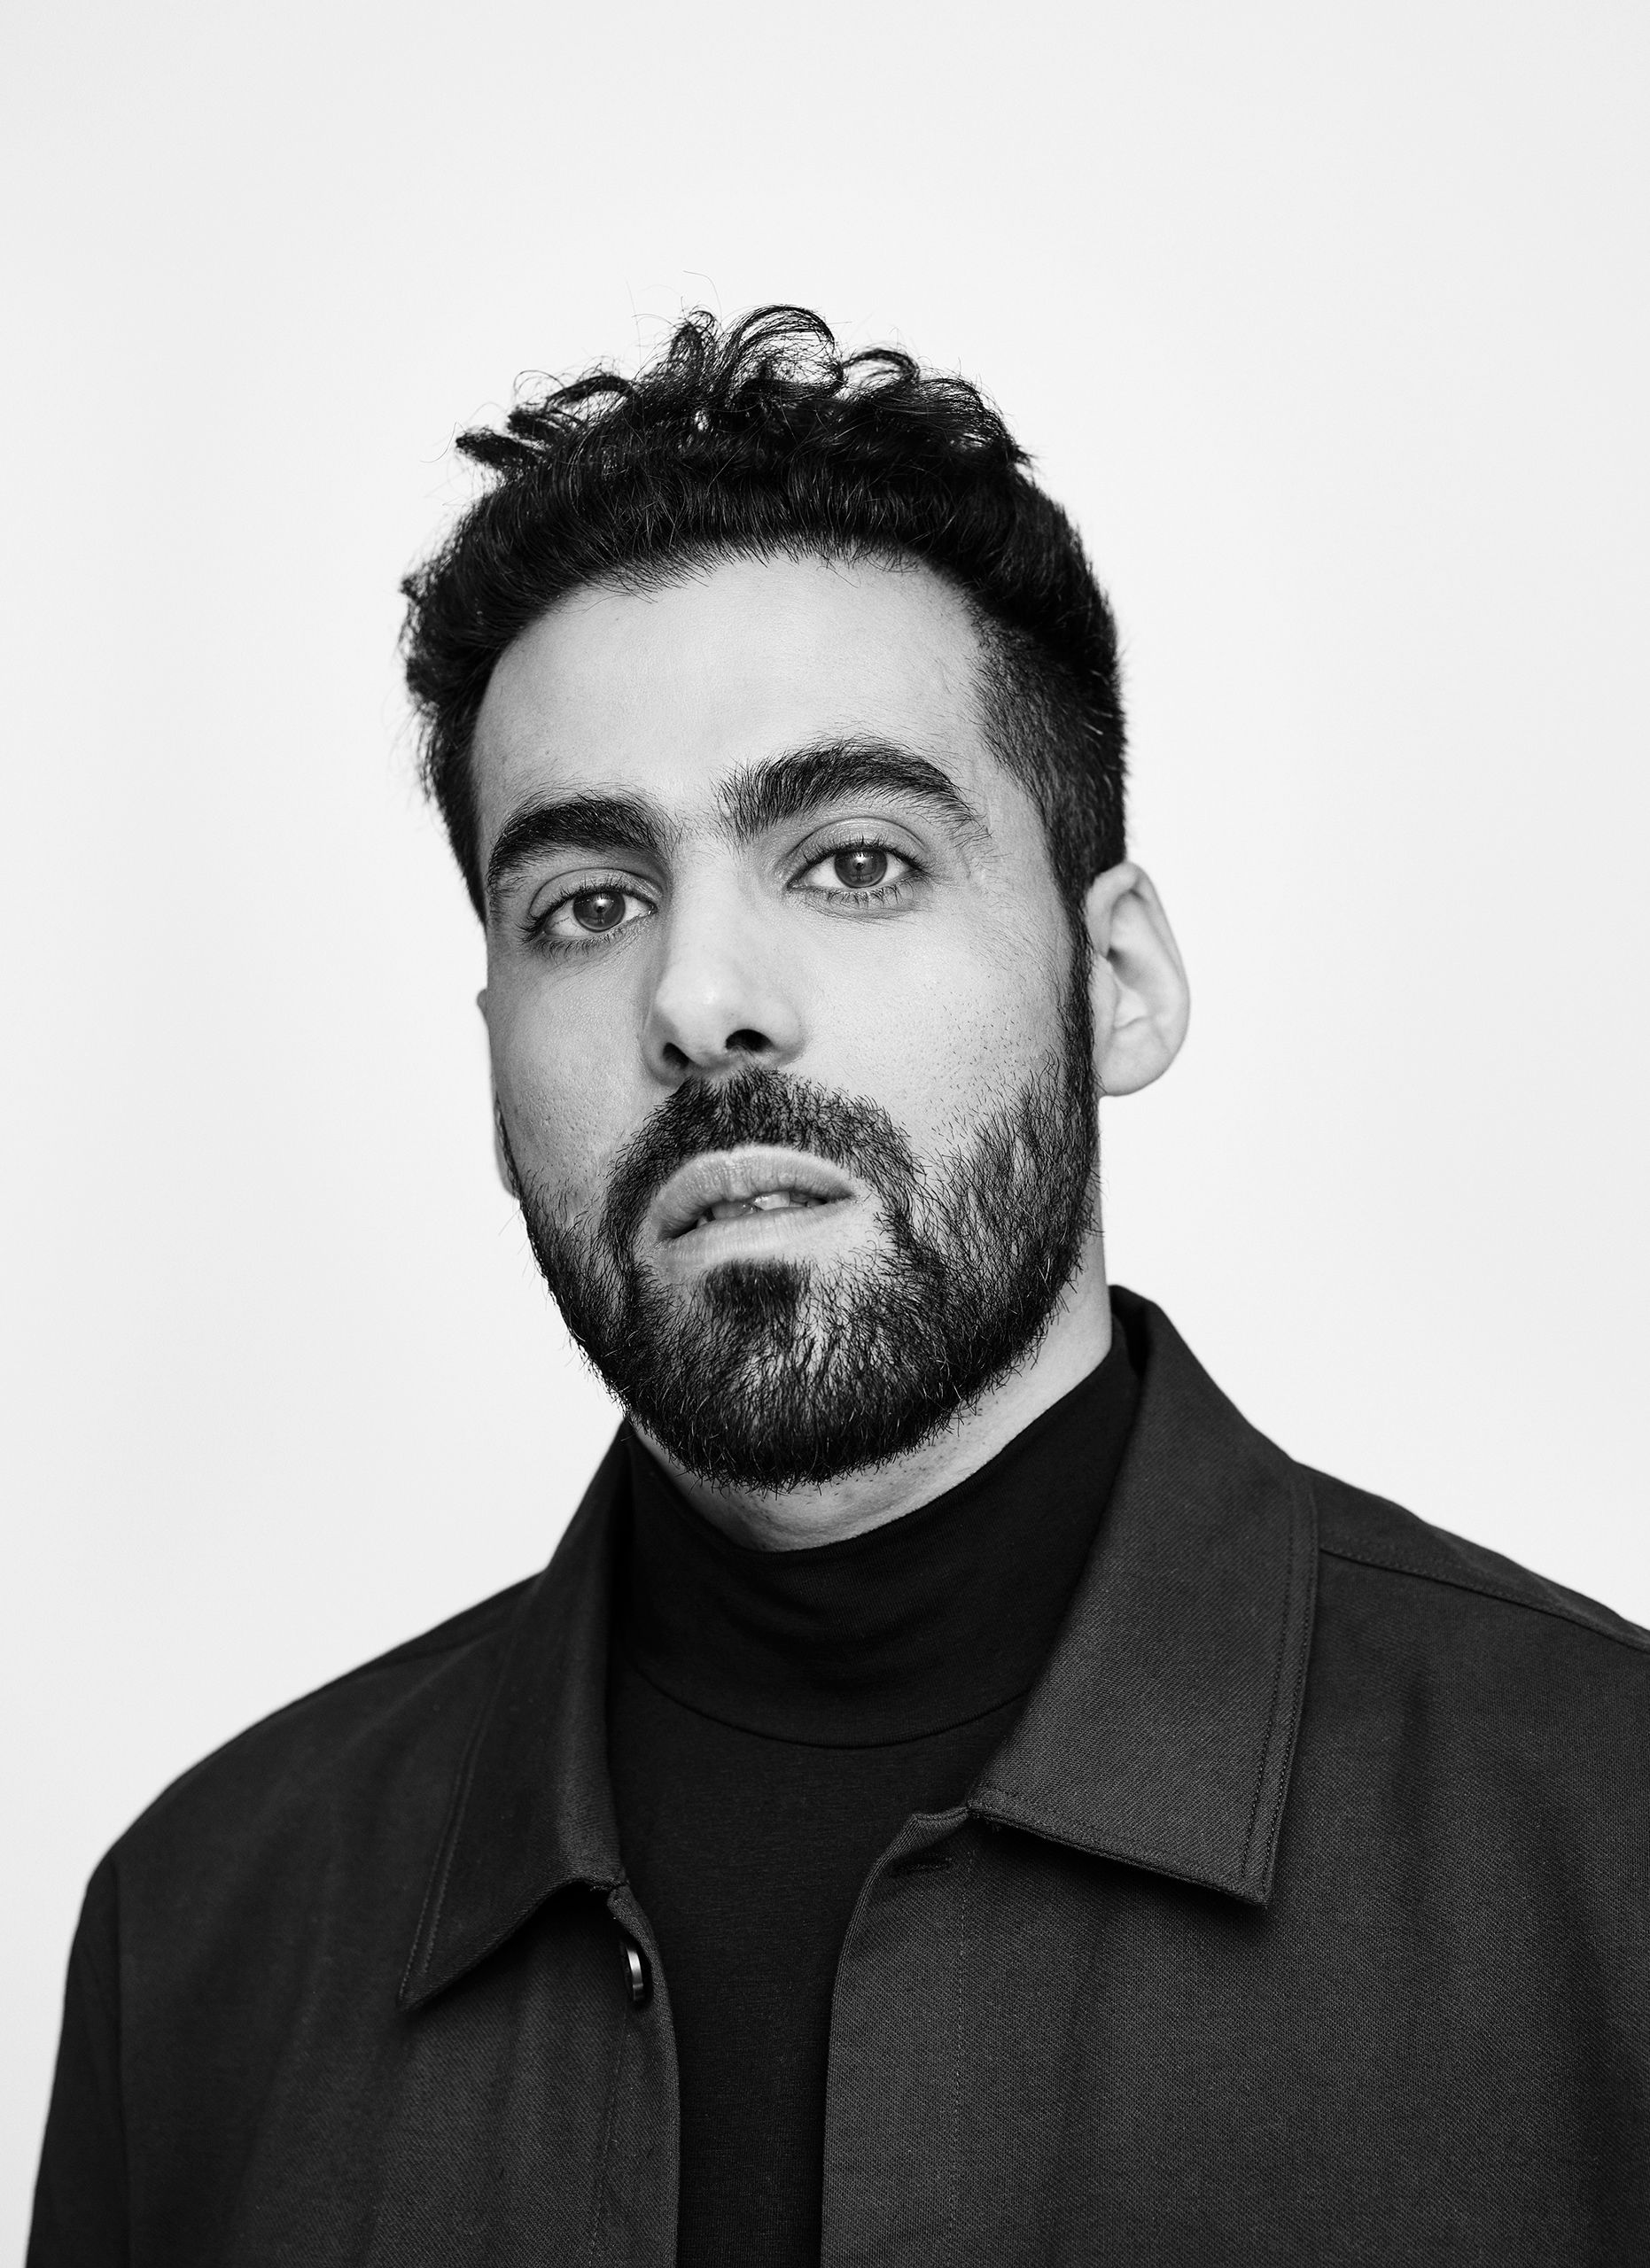 Black and white portrait of humorist Adib Alkhalidey wearing a turtleneck and a shirt.